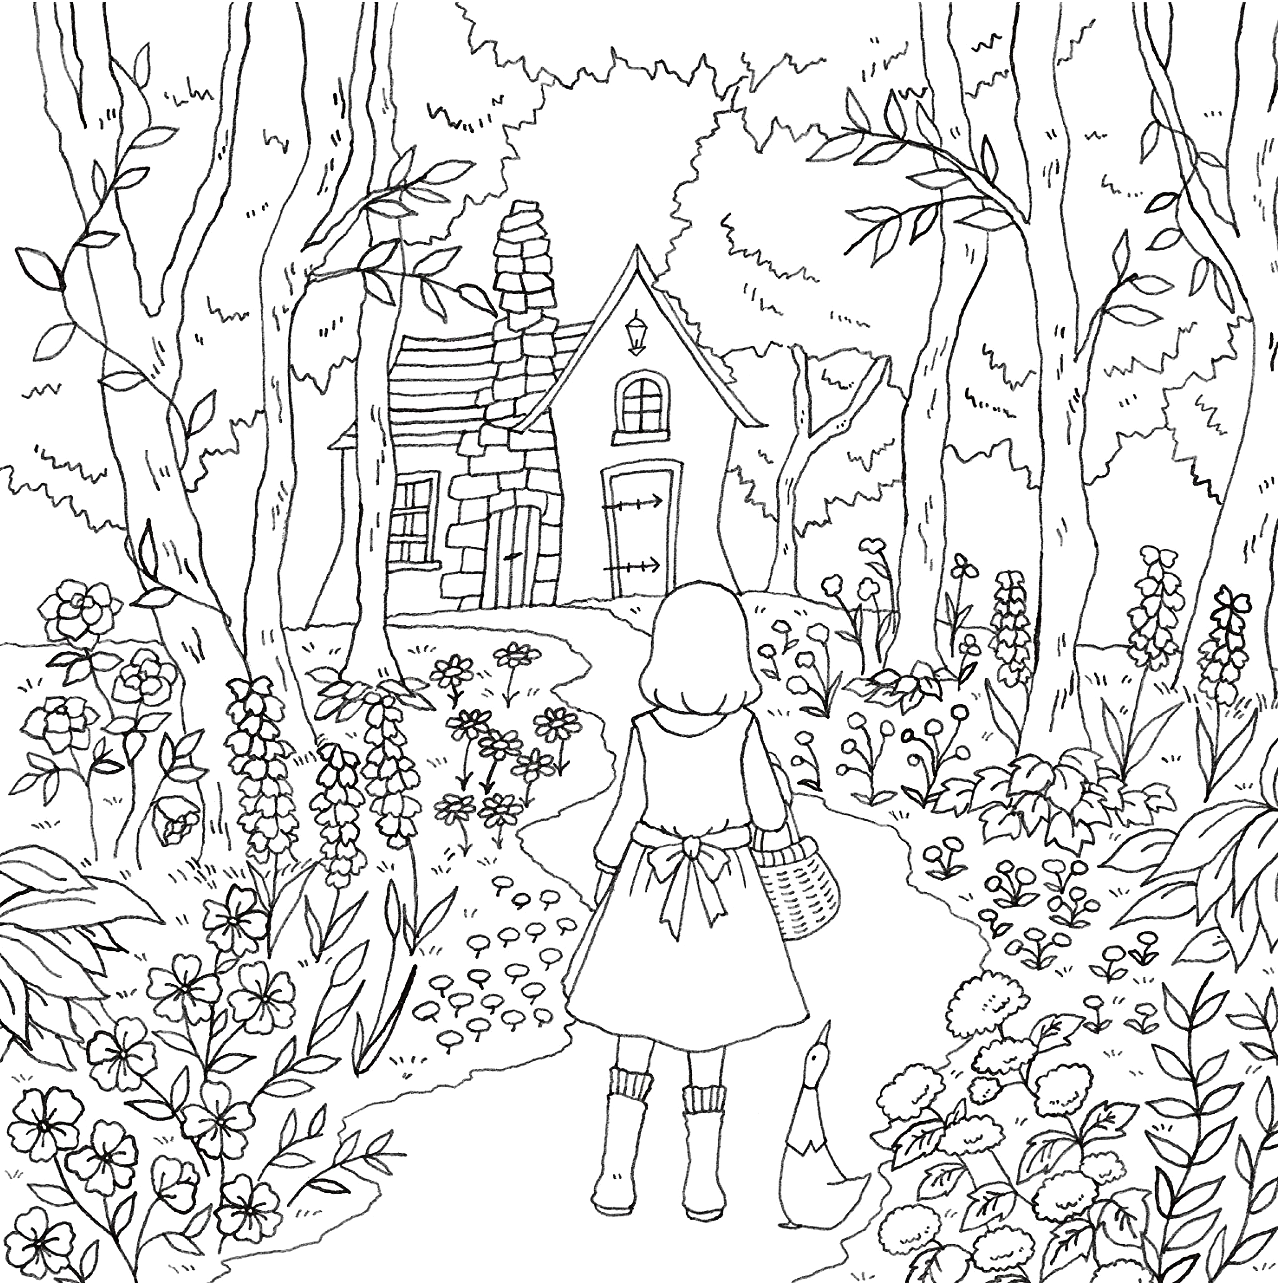 Romantic Country: A Fantasy Coloring Book (낭만주의 국가 : 판타지